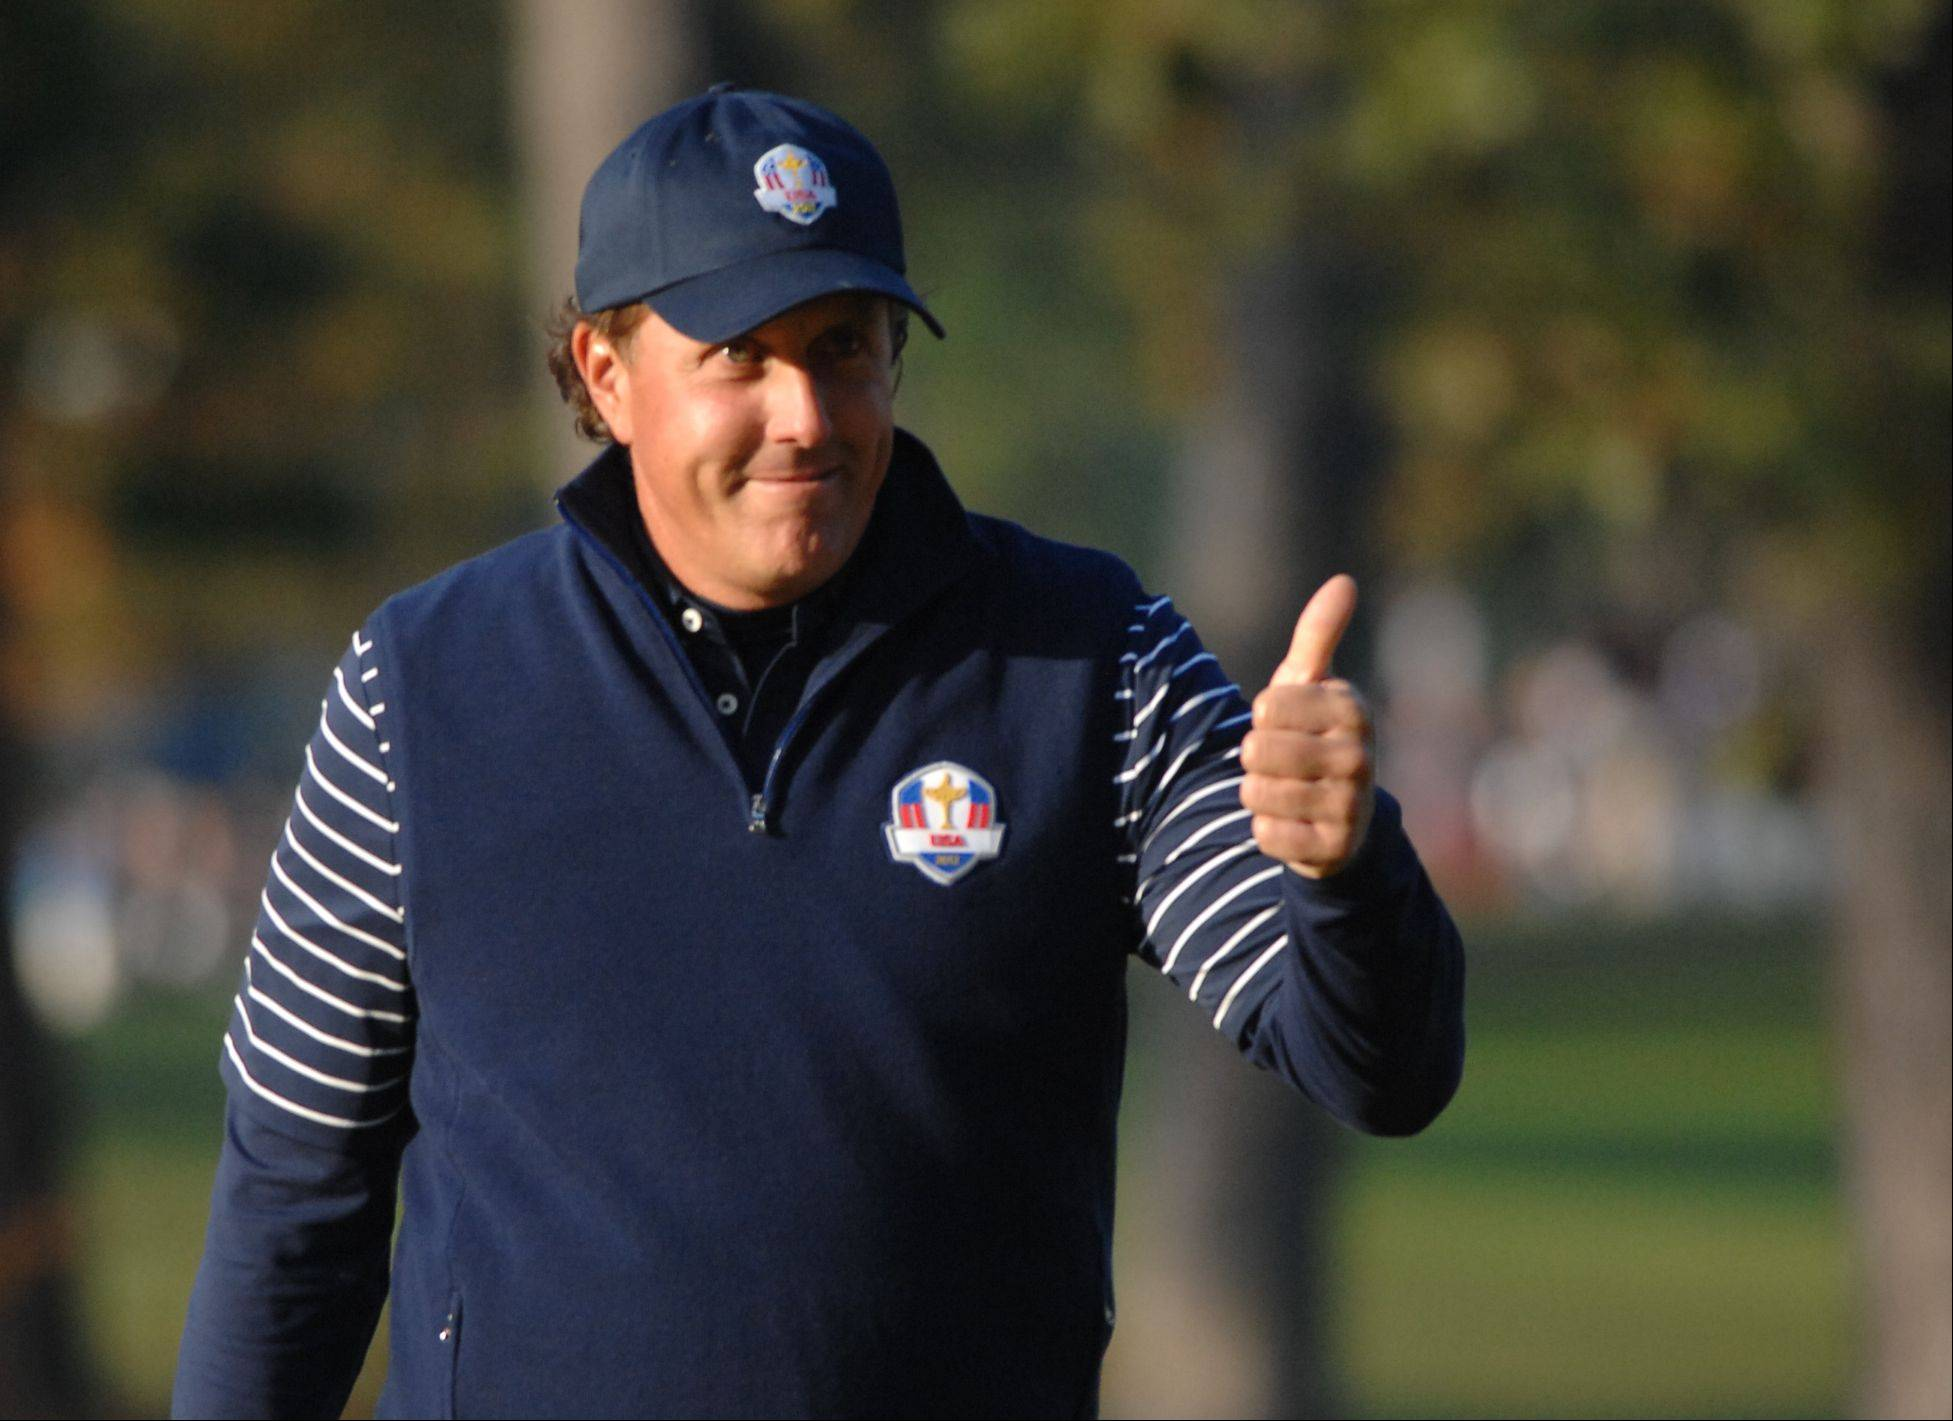 Phil Mickelson gives partner Keegan Bradley the thumbs-up for hitting a great shot from the rough on the 4th hole that landed on the green Saturday morning during Day 2 of the 2012 Ryder Cup at Medinah Country Club.